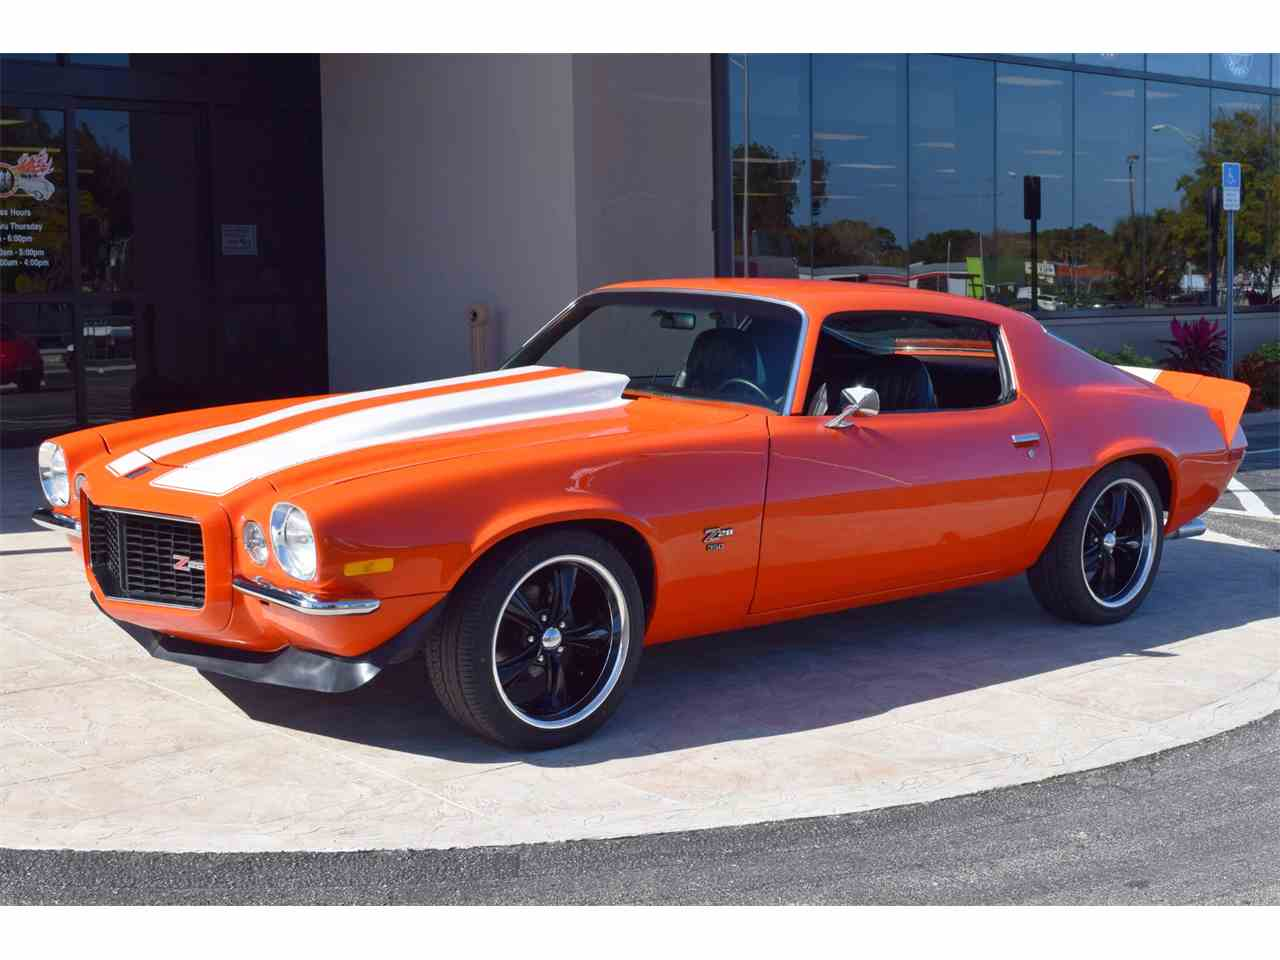 Large Picture of Classic '73 Camaro located in Florida - $39,983.00 Offered by Ideal Classic Cars - LEQE